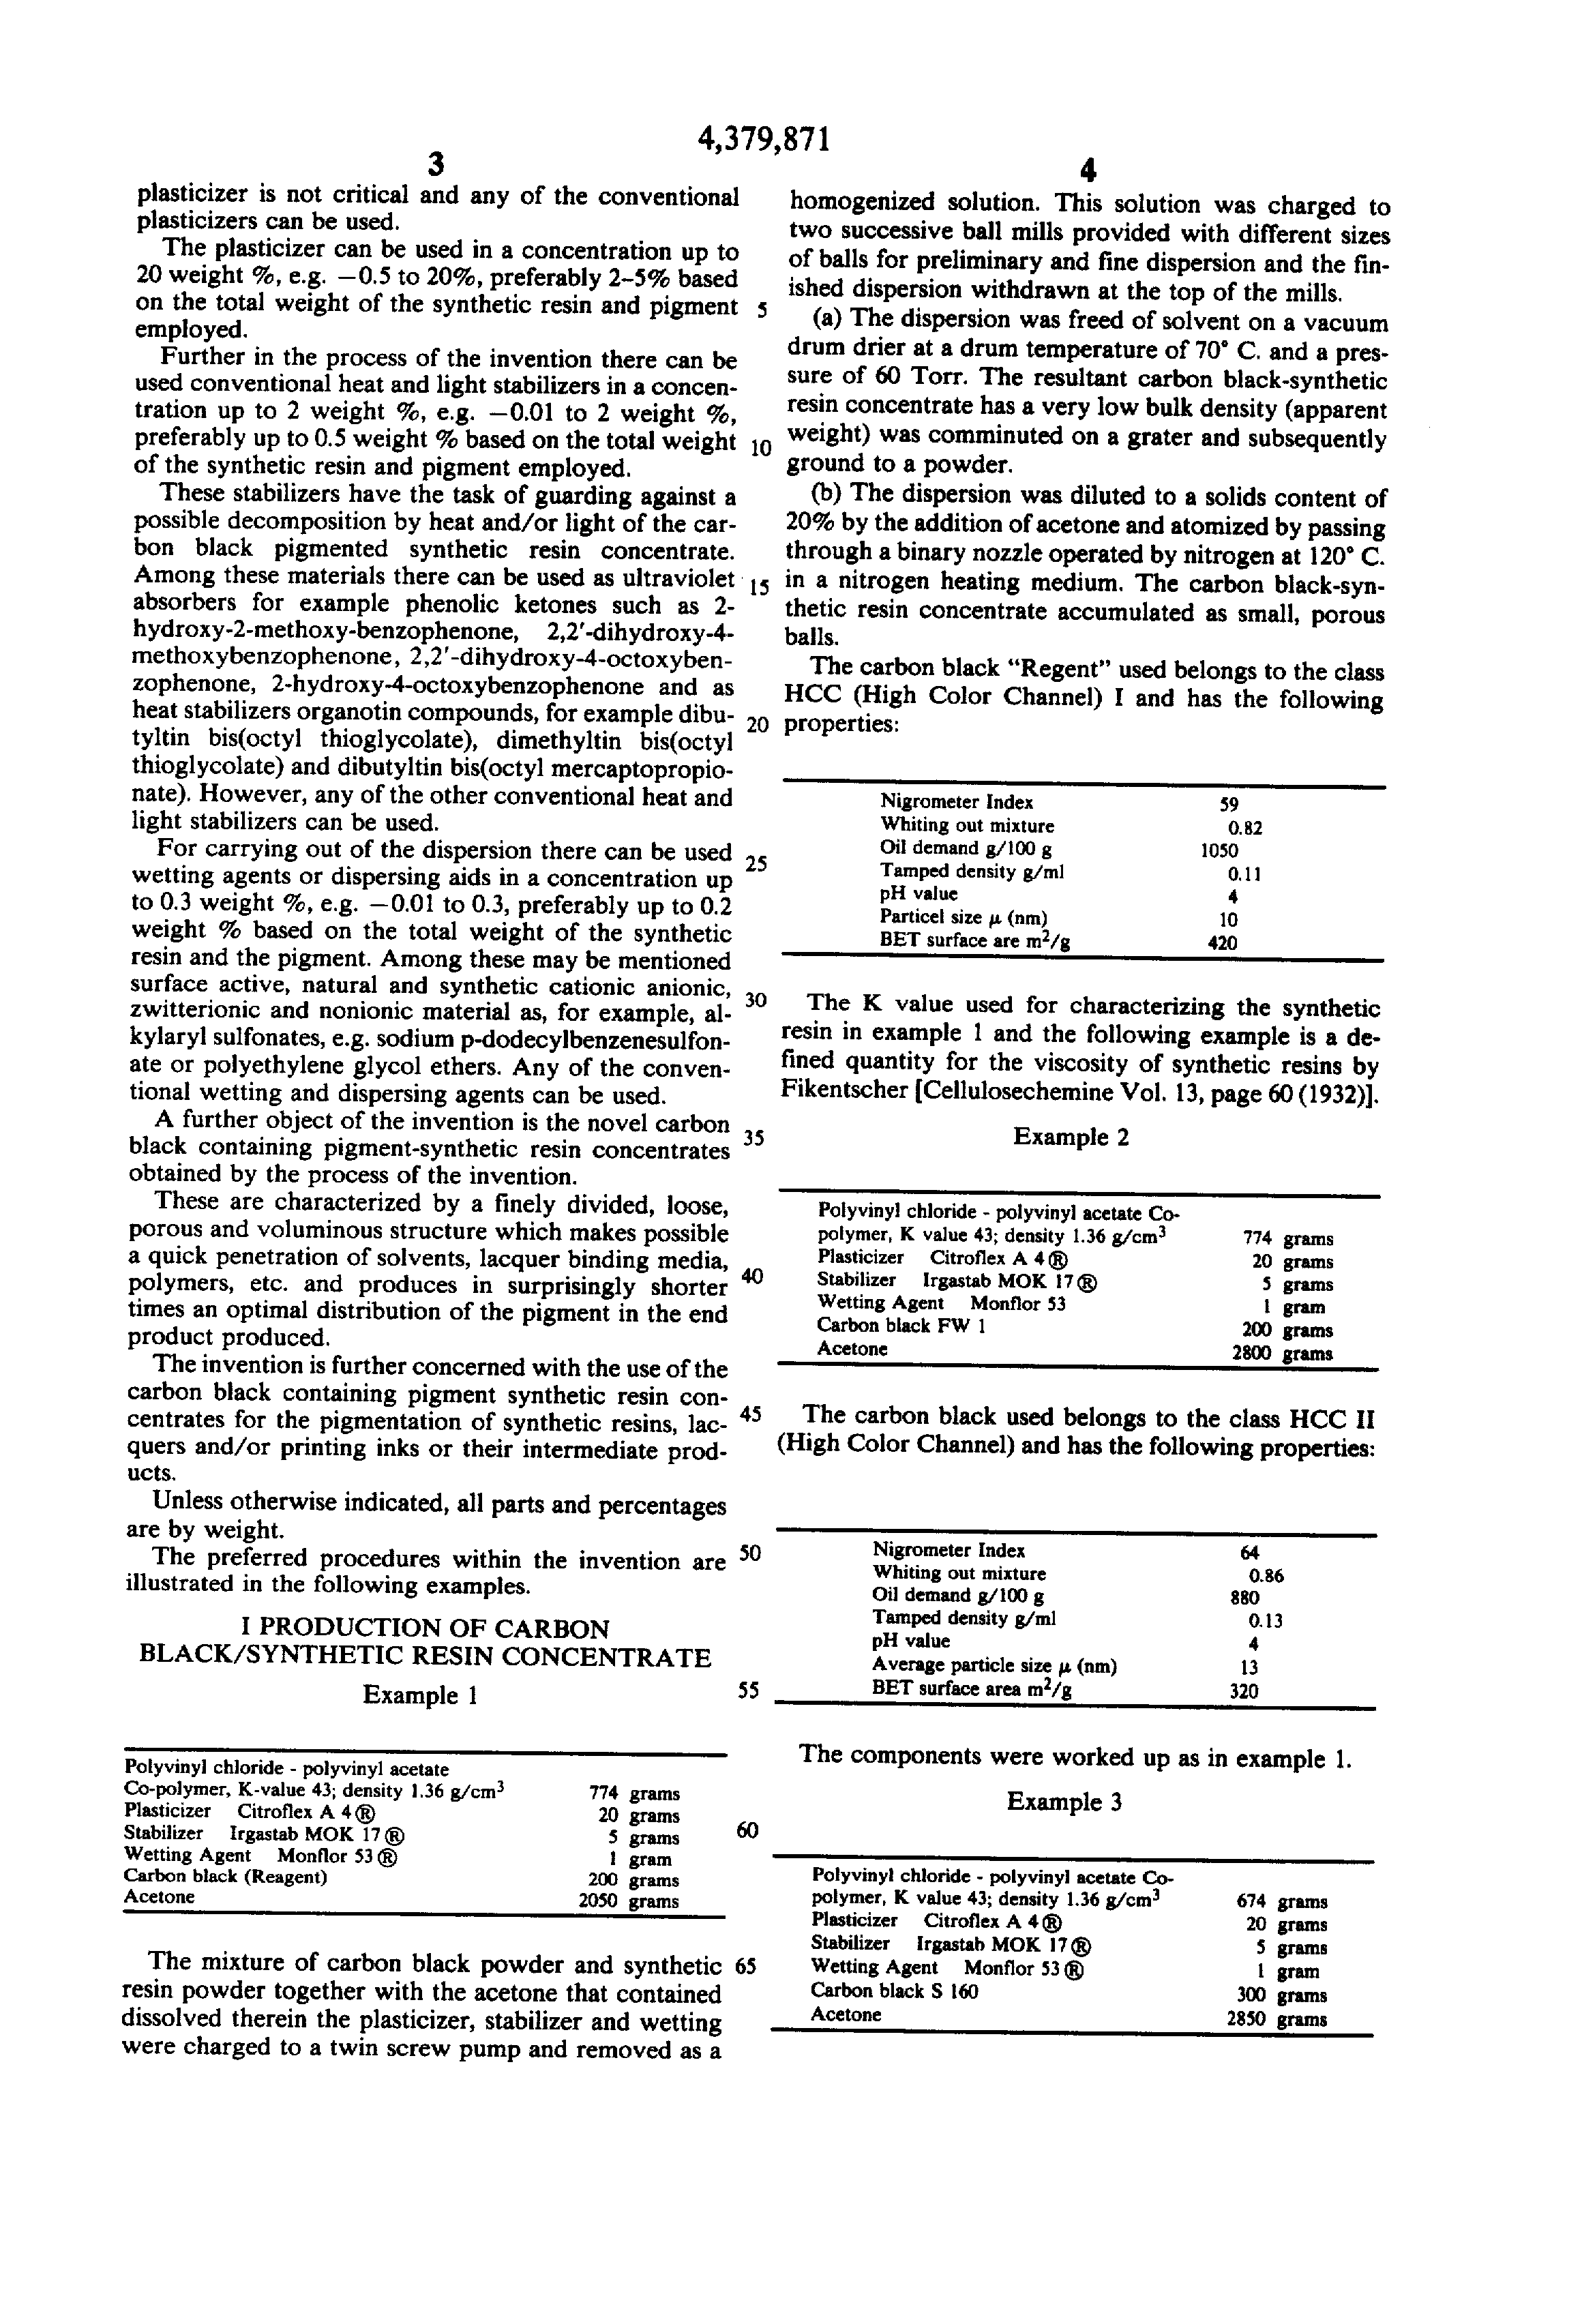 Patent US4379871 - Process for the production of carbon black